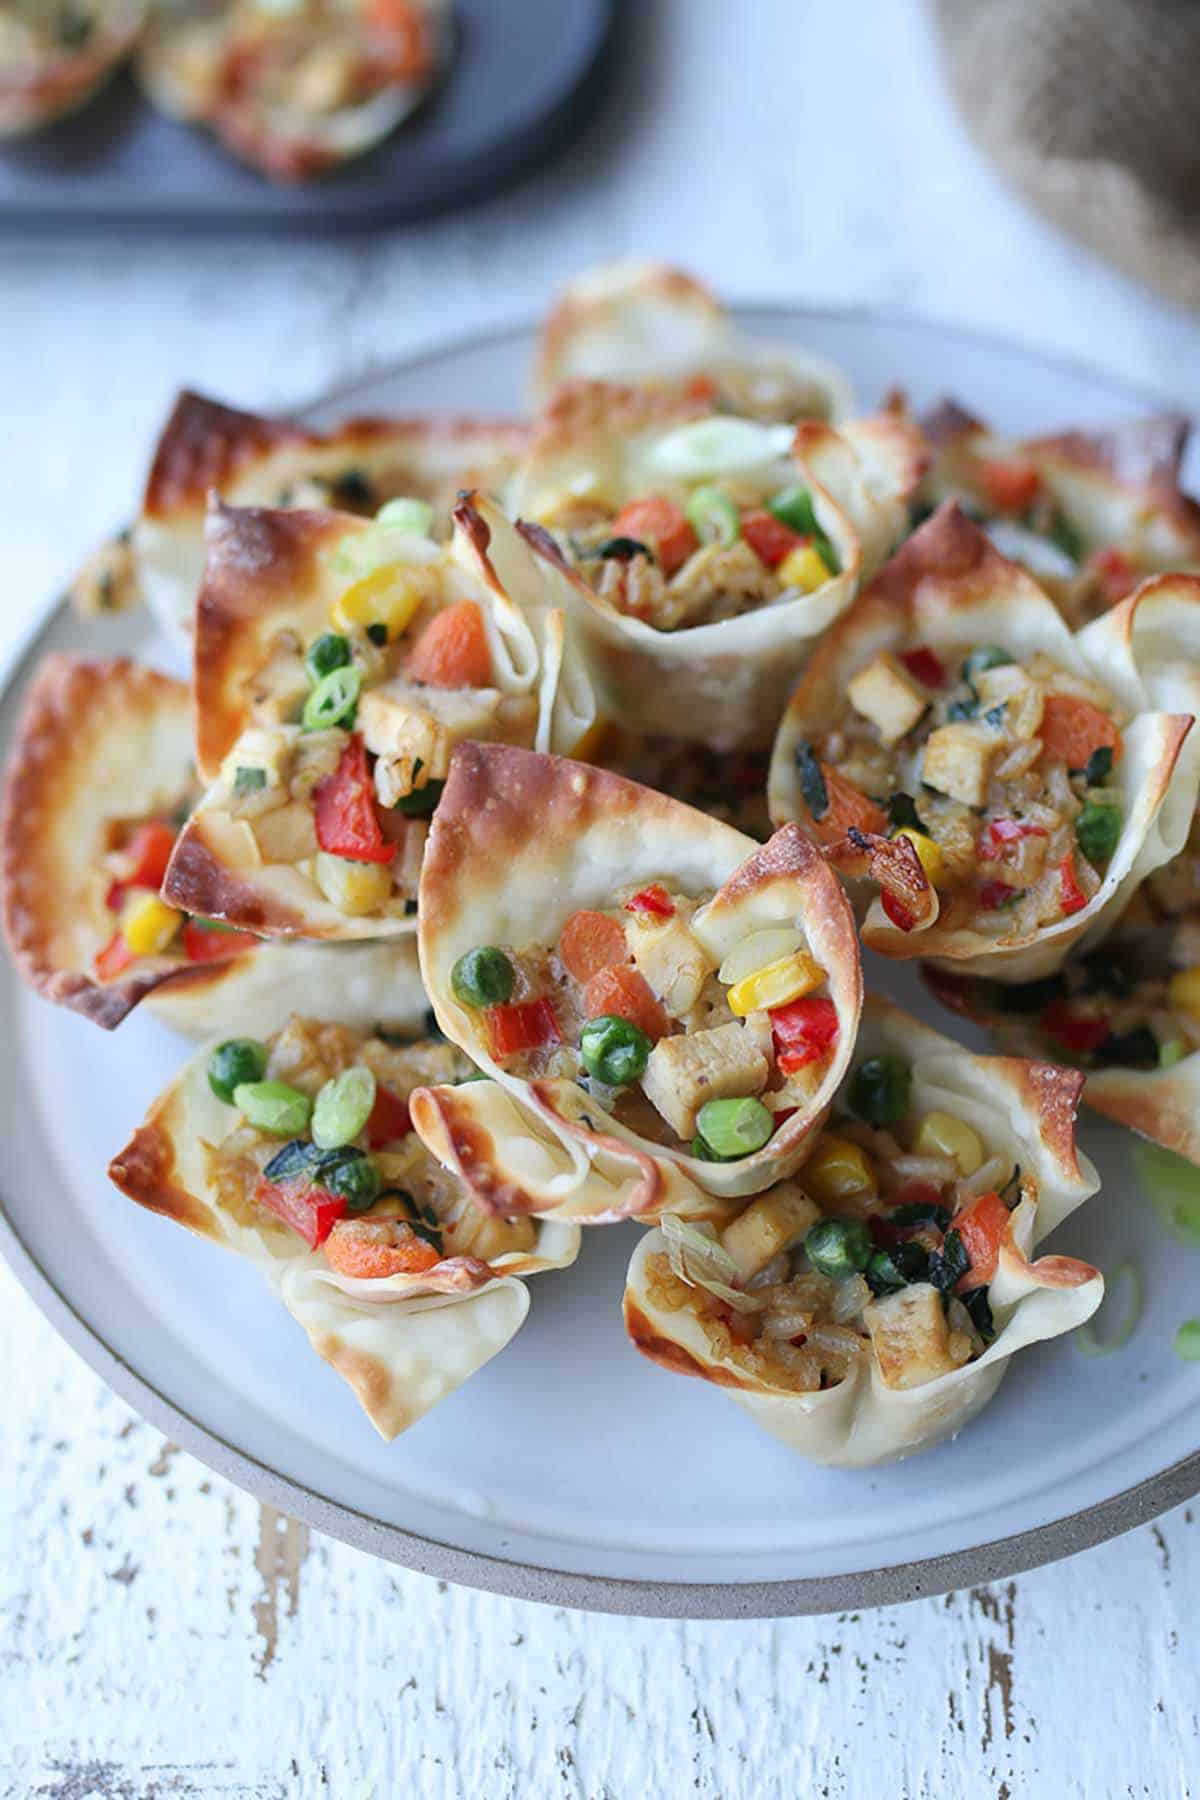 Fried rice cups on a white plate.